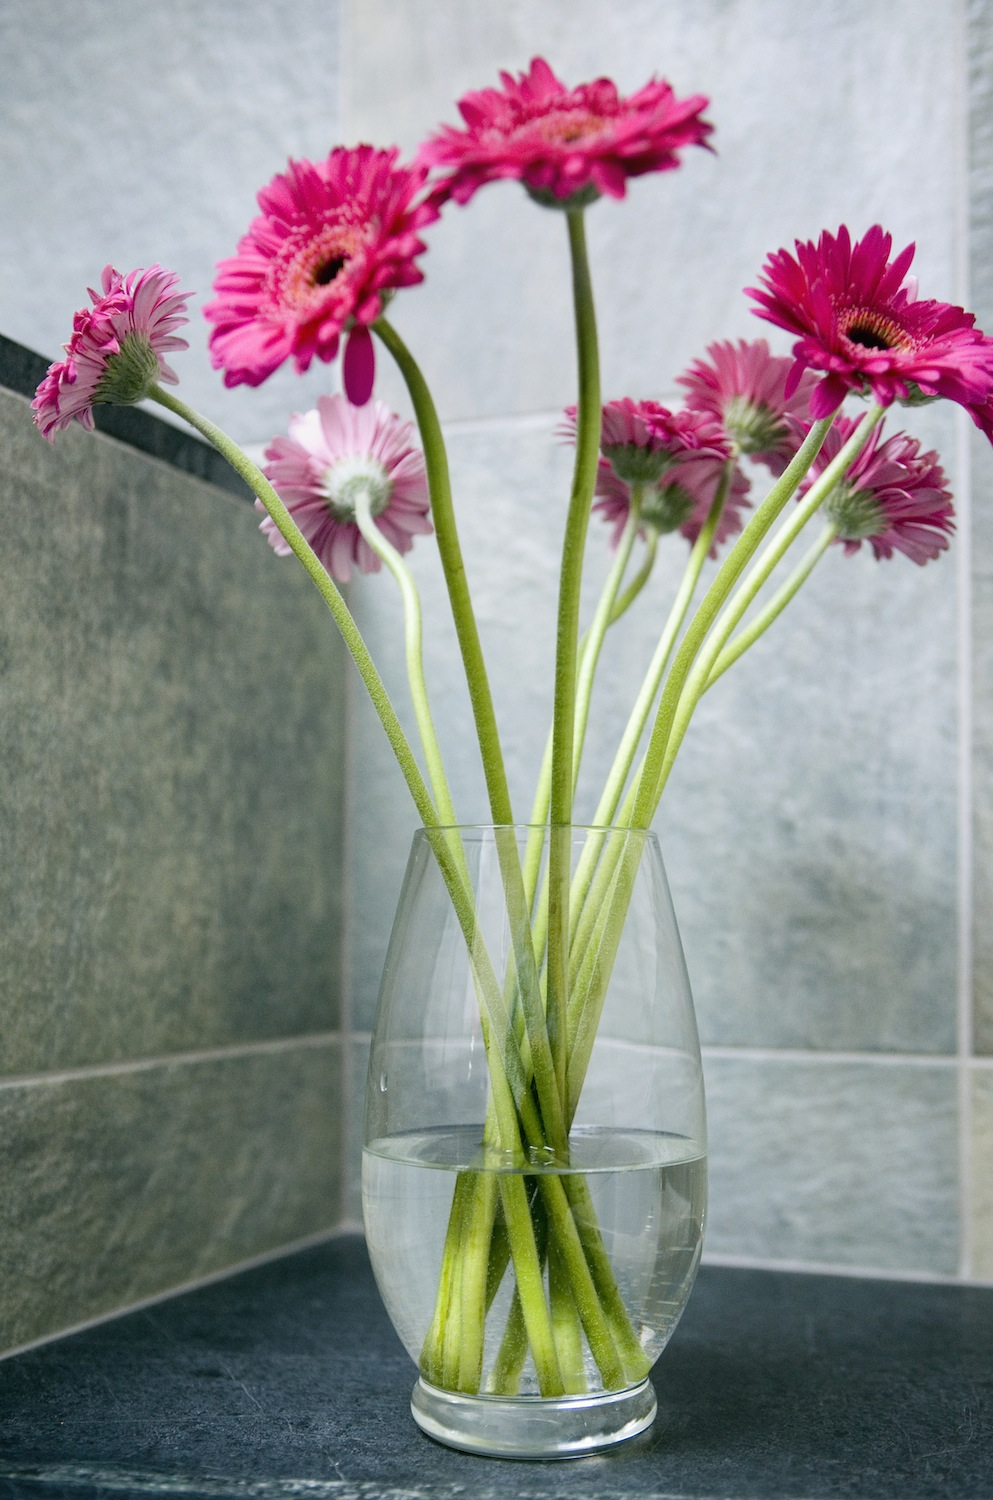 Joyce Bath Flower Detail.jpg